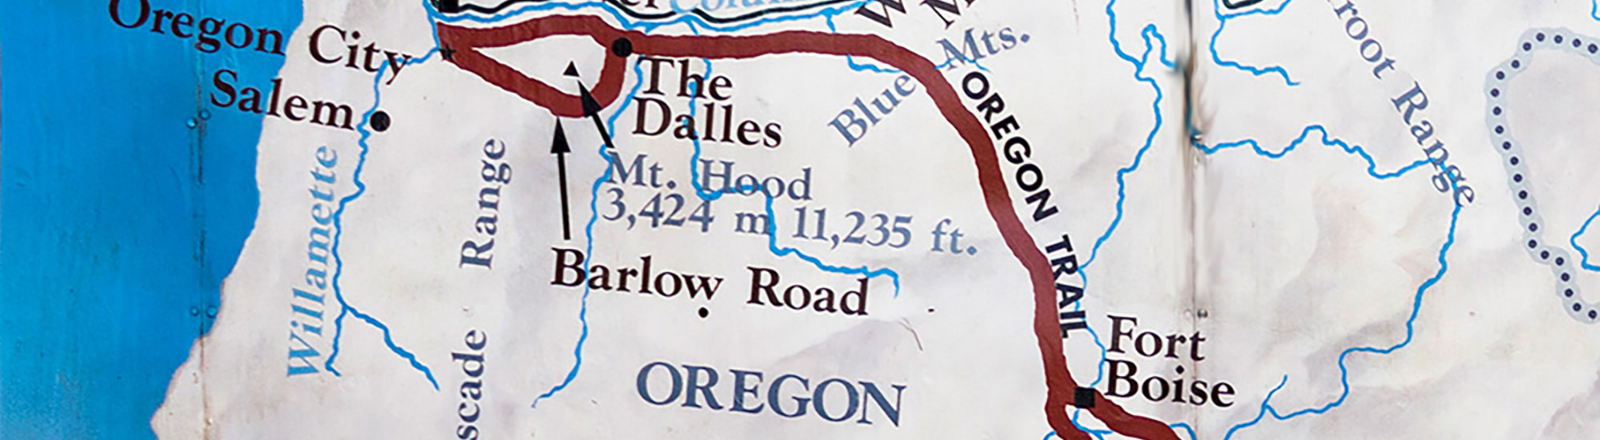 Map of Oregon Trial through Oregon and Idaho with route marked in red